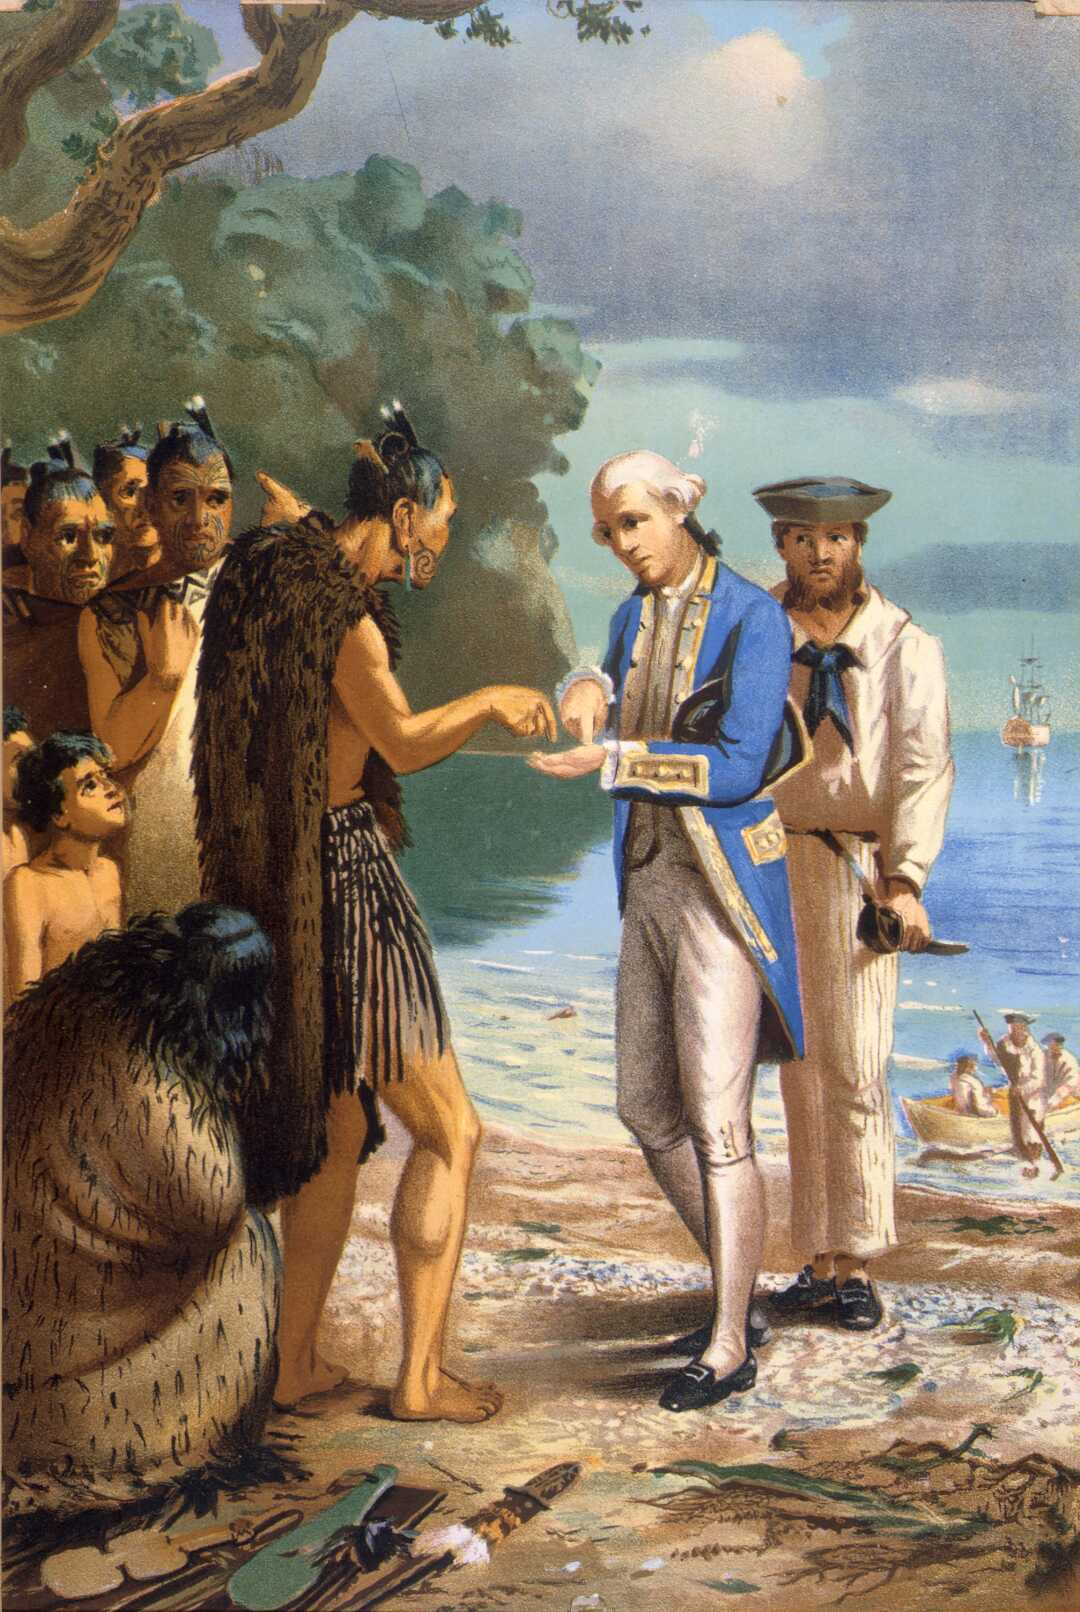 Simon Chapple: How many Māori lived in Aotearoa when Captain Cook arrived?